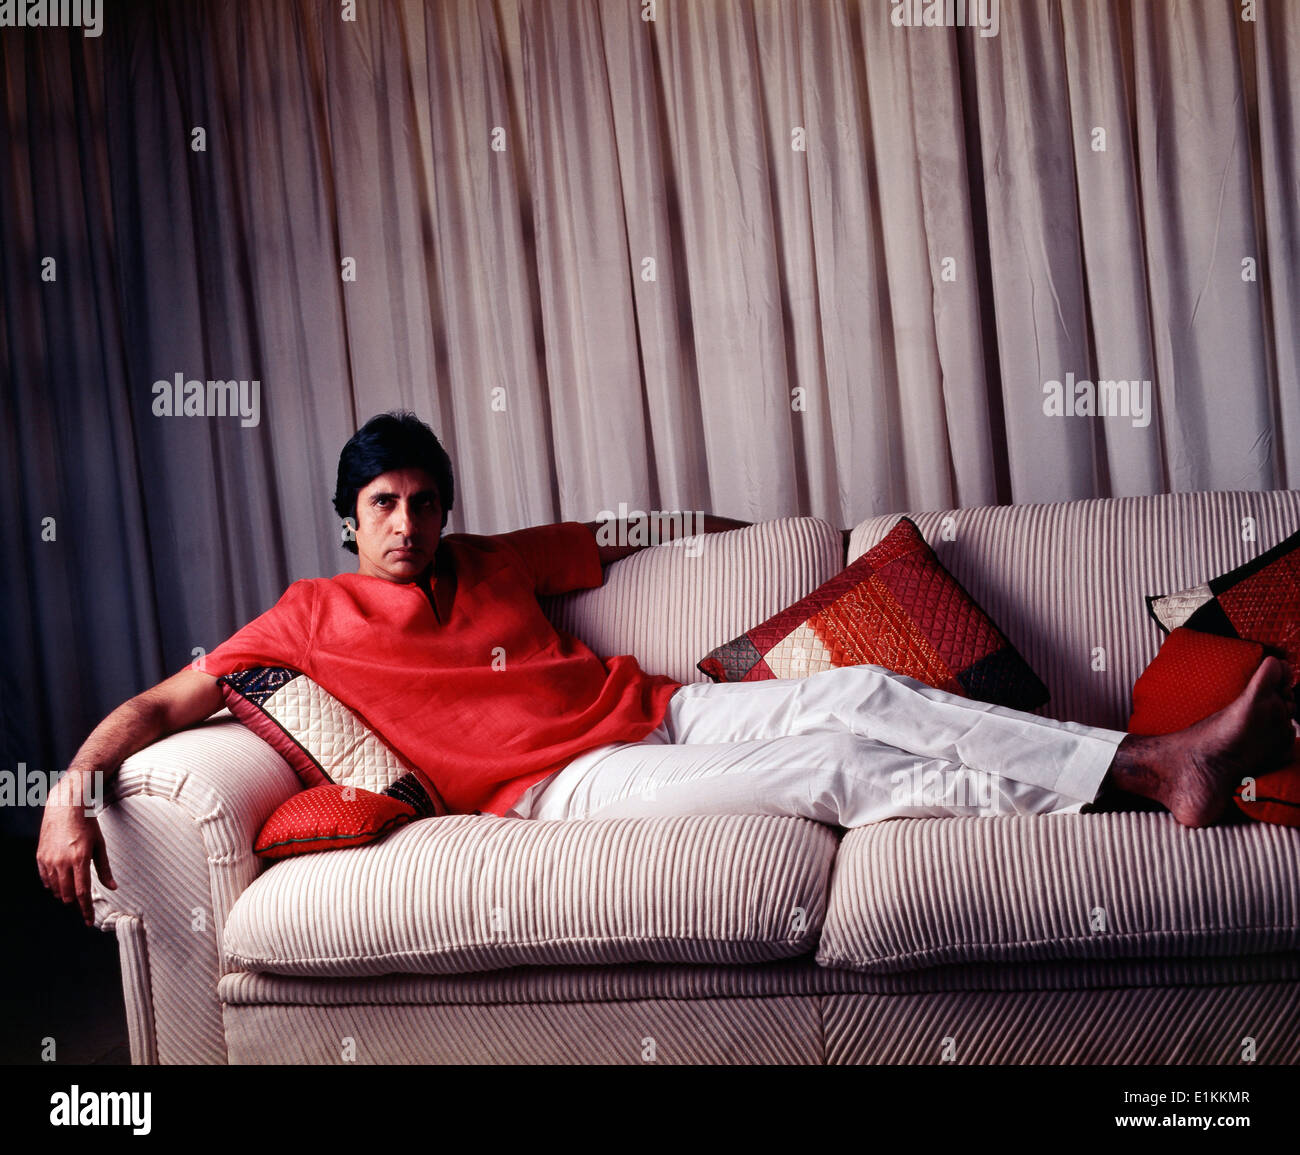 Image result for amitabh barefoot